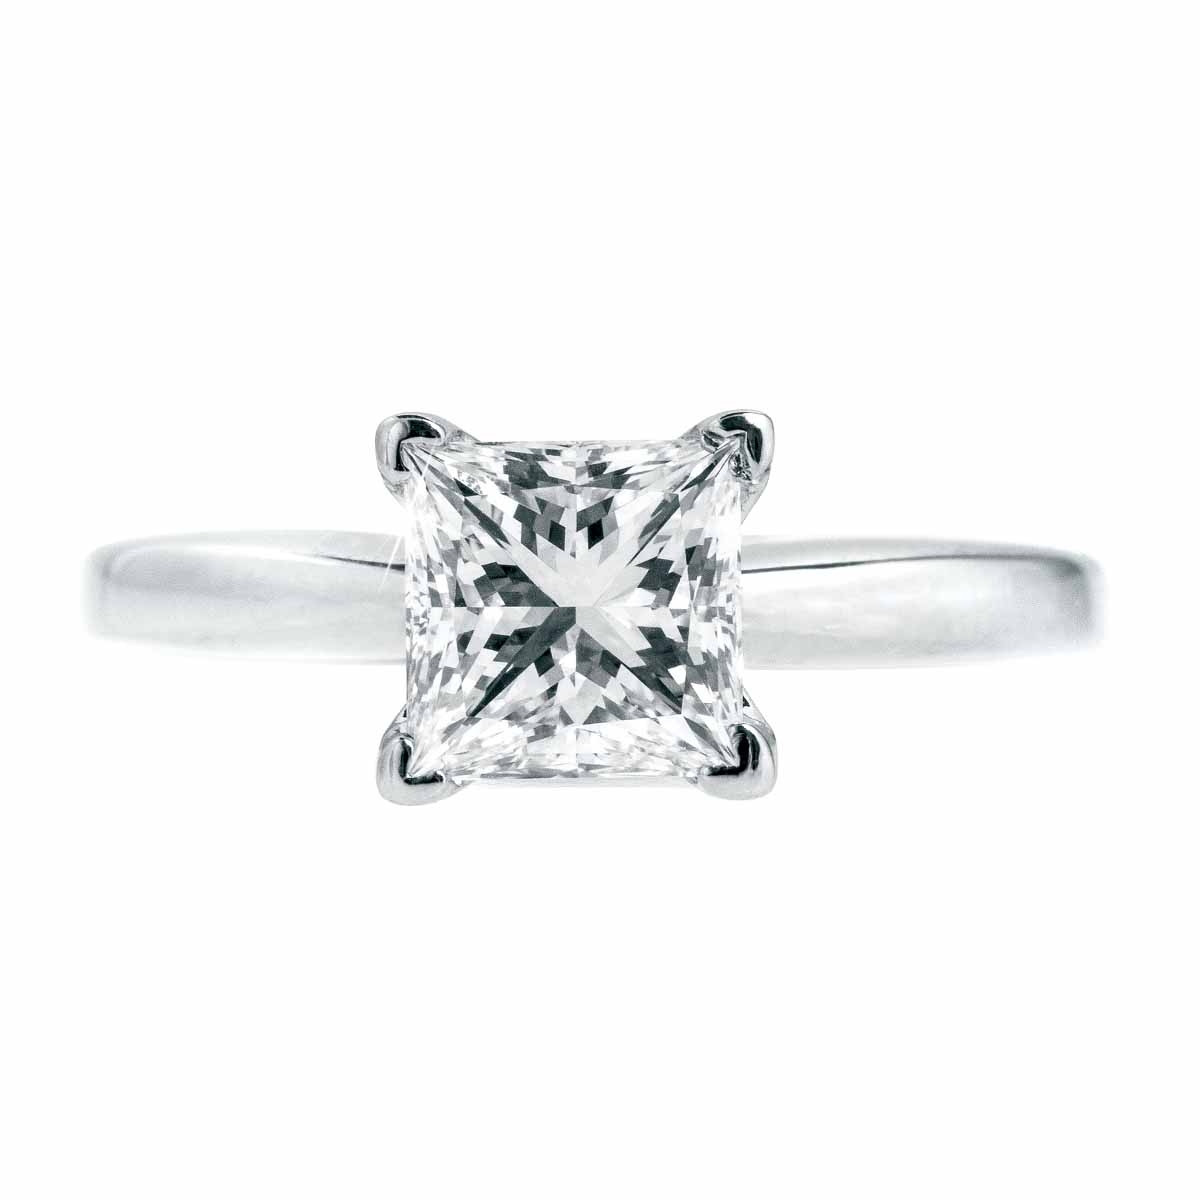 Vintage 1.29 CT Diamond Engagement Ring